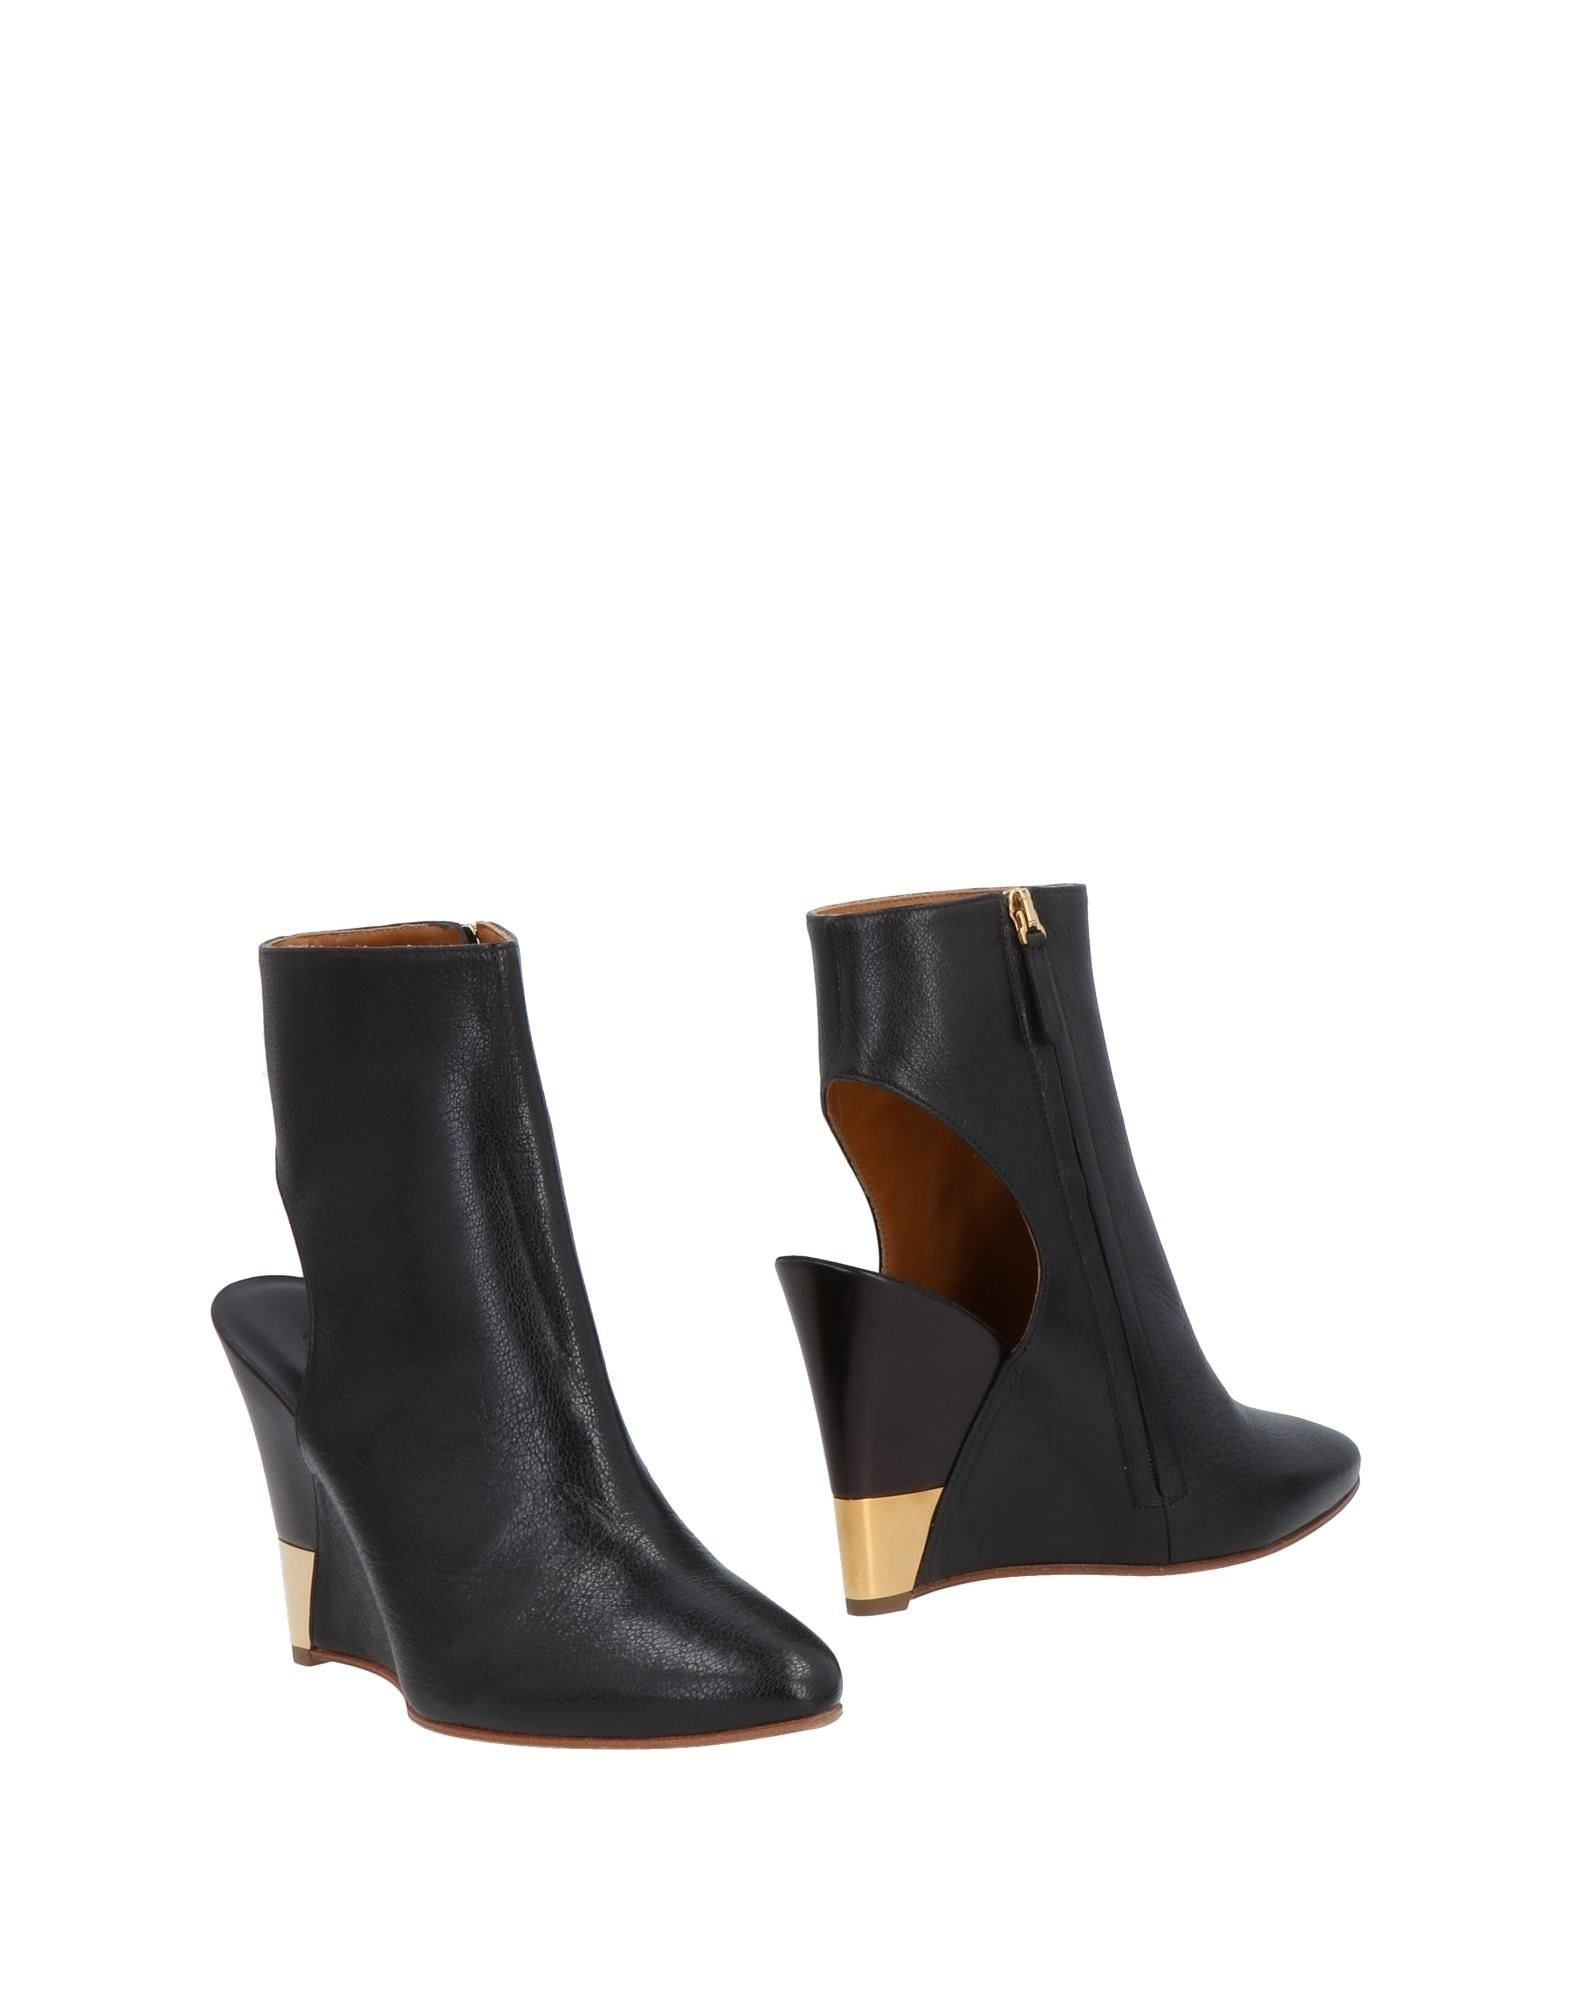 Chloé Ankle Boot Boots - Women Chloé Ankle Boots Boot online on  Australia - 11497302CG e95e0c